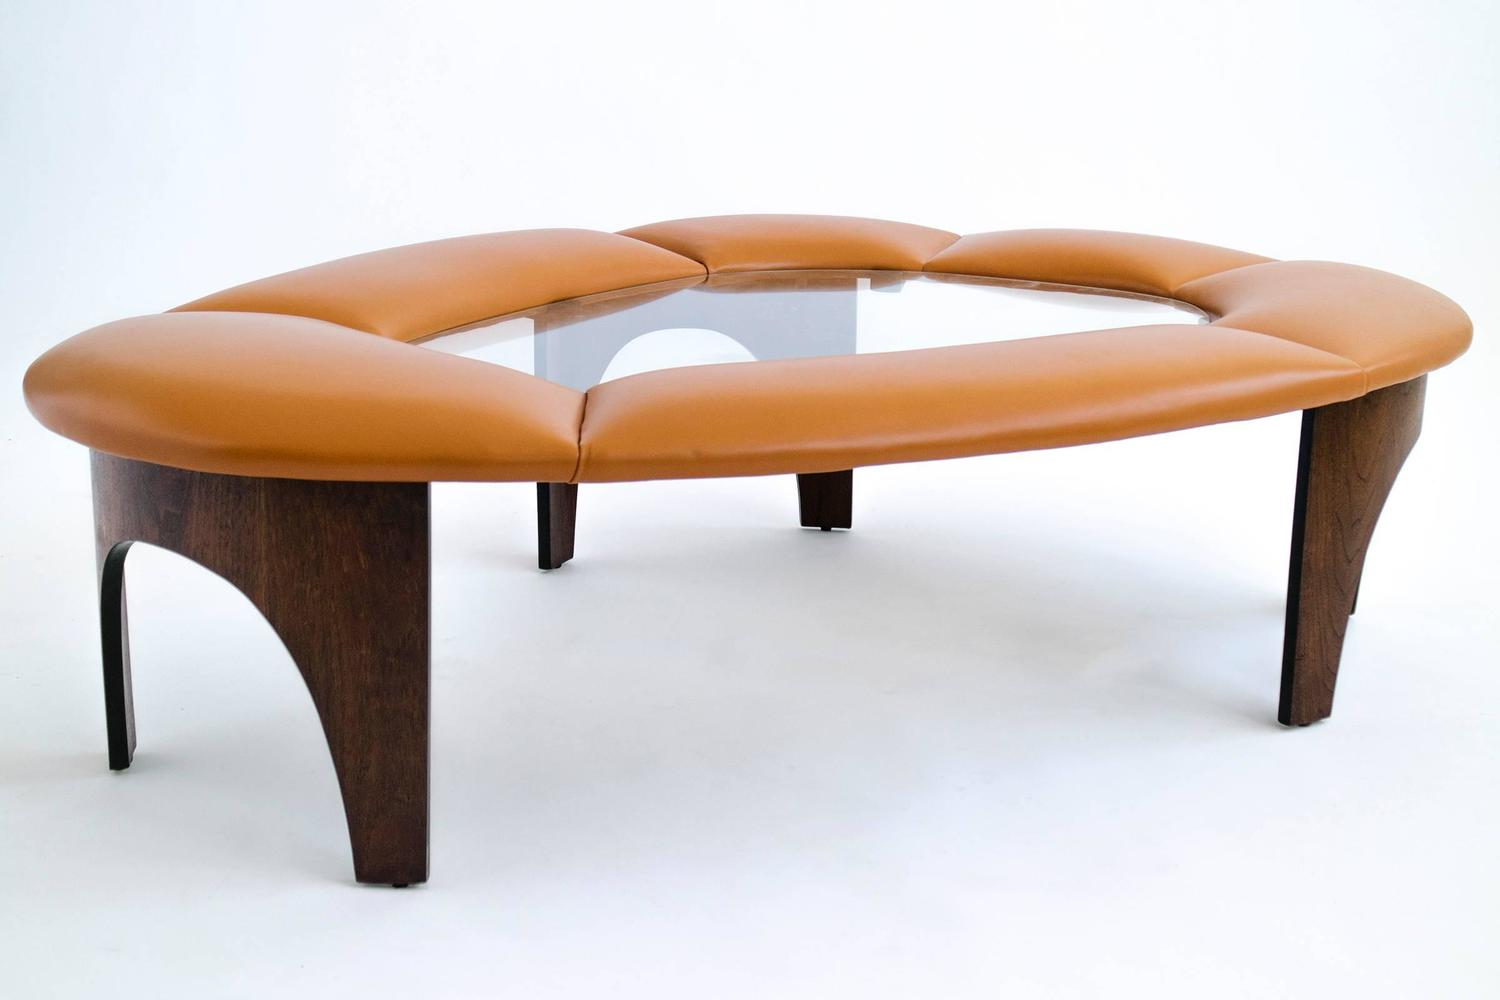 Henry Glass Upholstered Coffee Table For Sale At 1stdibs